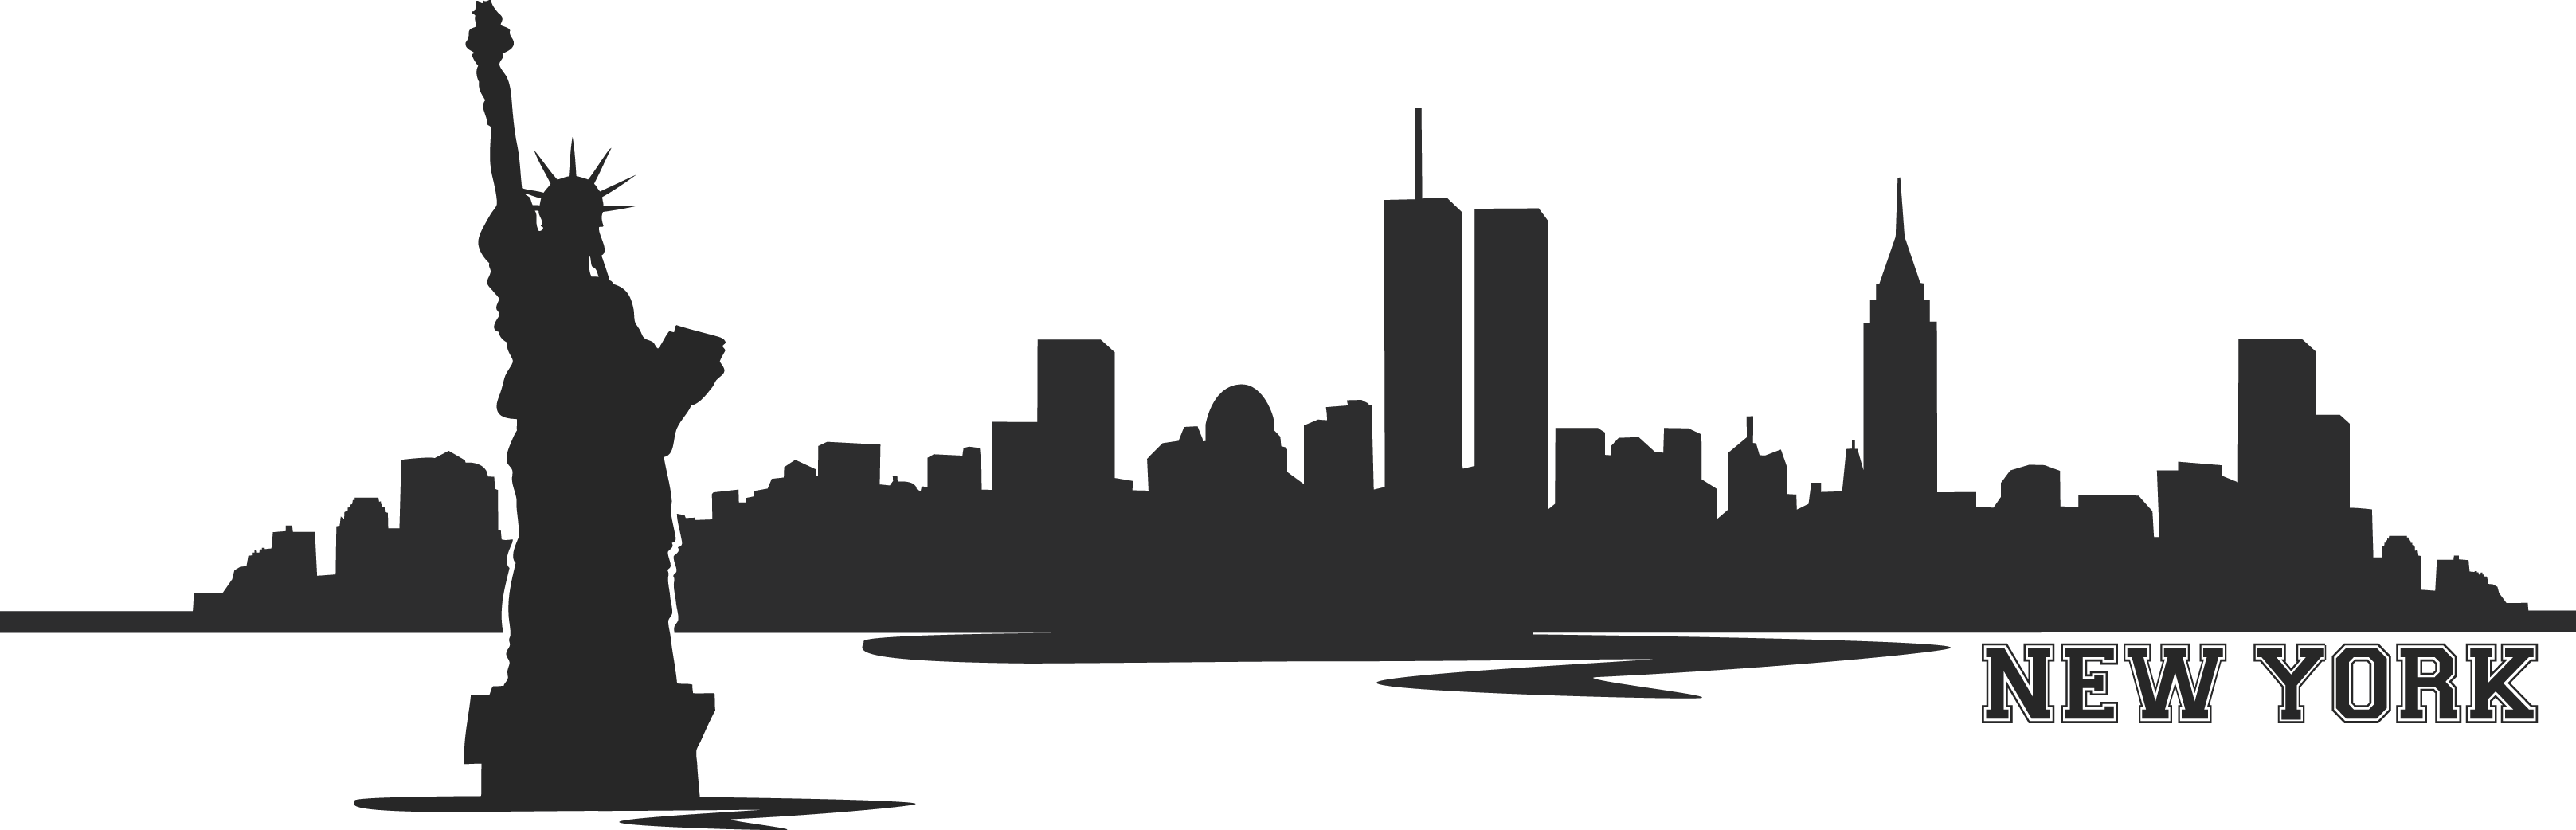 Skyline New York Wall Sticker Wallsticscom - New York City PNG Black And White